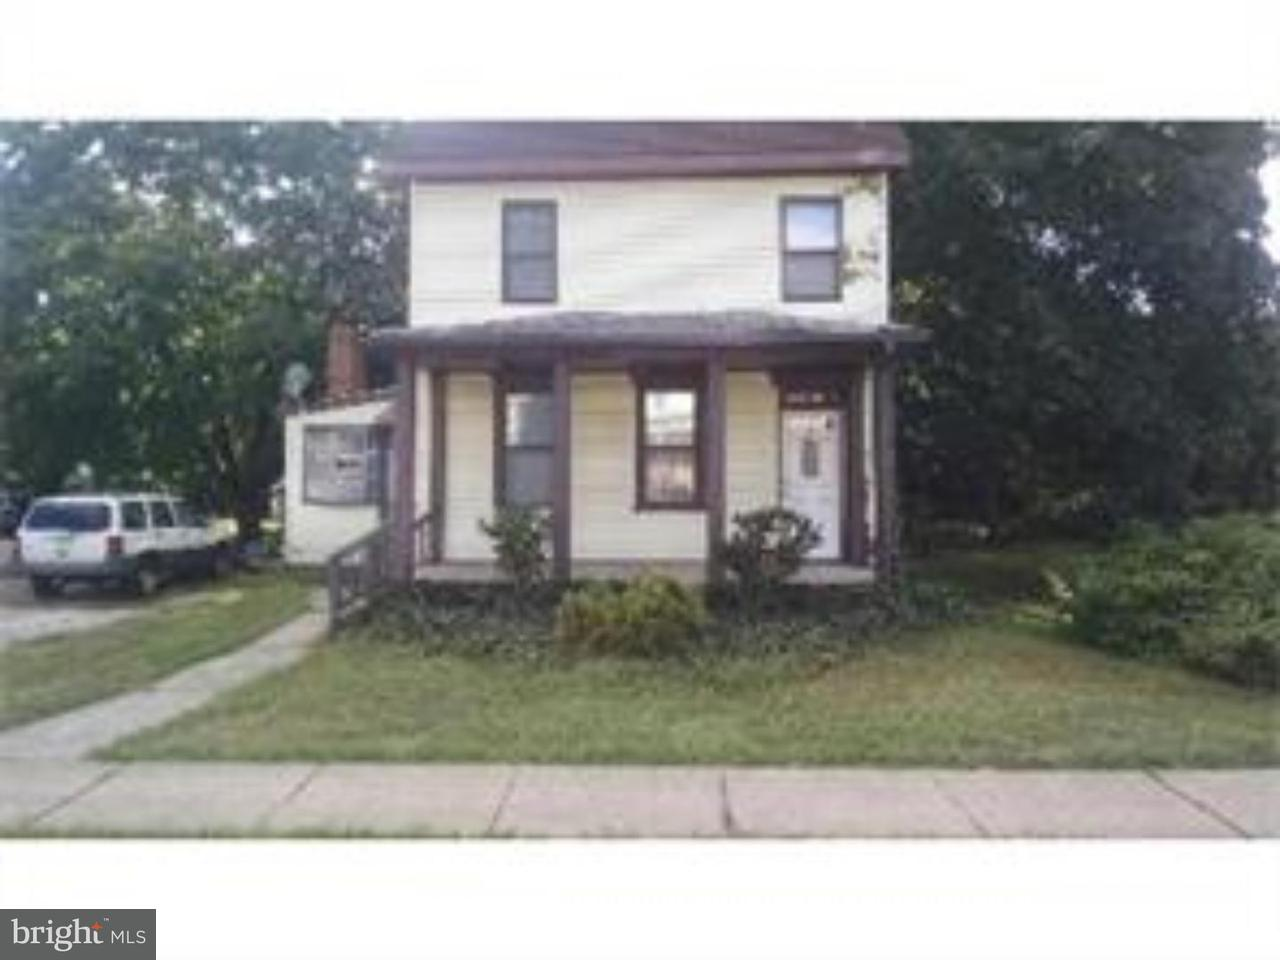 Single Family Home for Rent at 317 N MAIN Street Glassboro, New Jersey 08028 United States